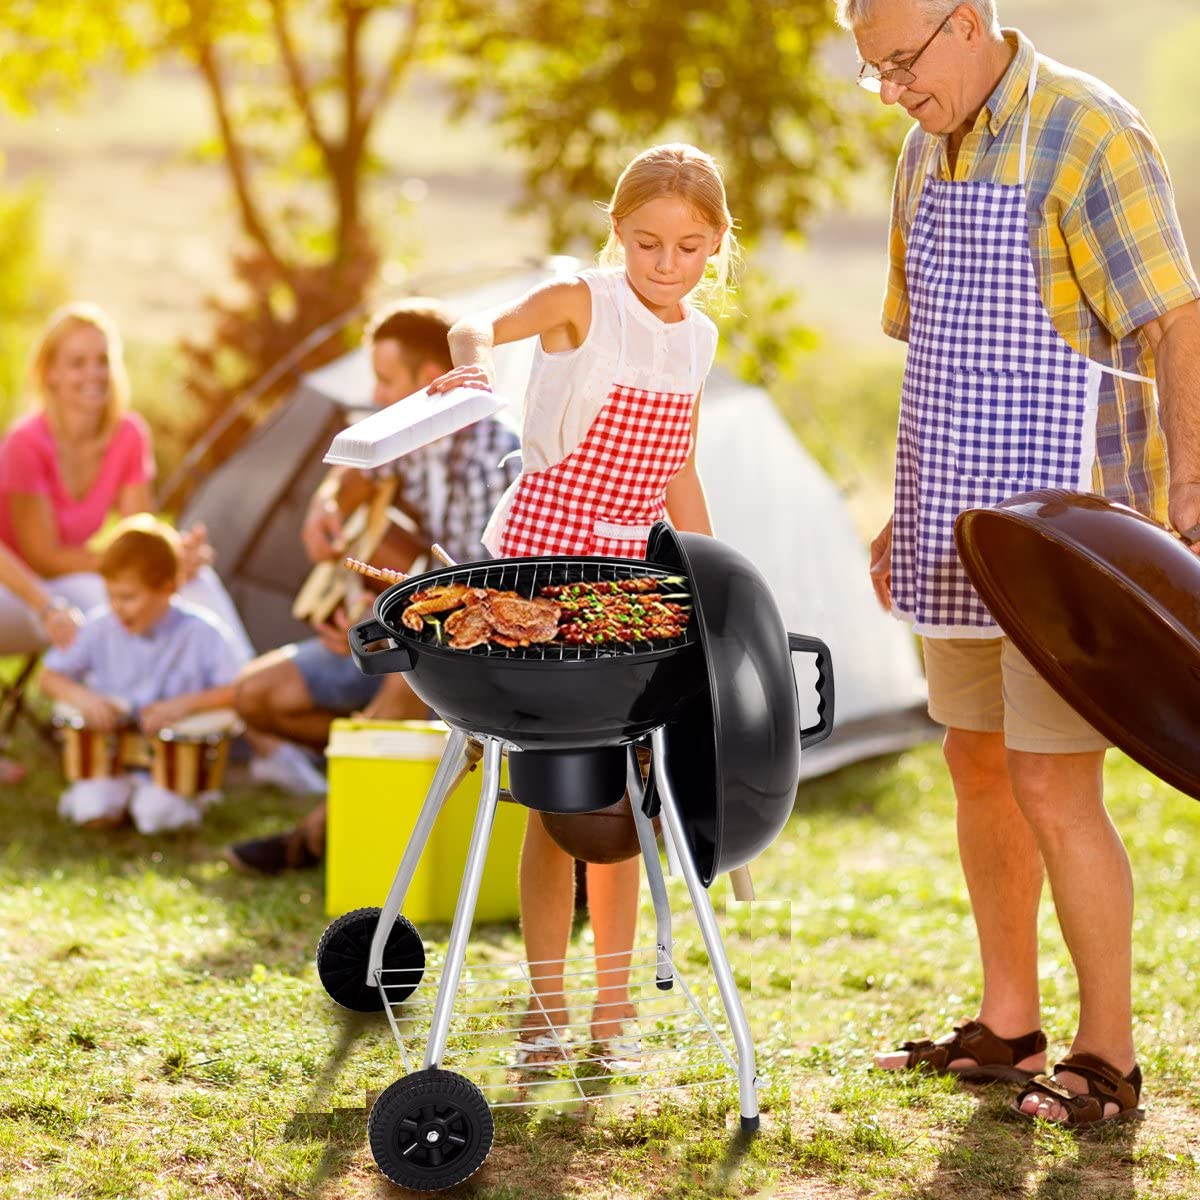 HAPPYGRILL Outdoor BBQ Grill Portable Barbecue Charcoal Grill Oven with Wheels for Patio Backyard Party